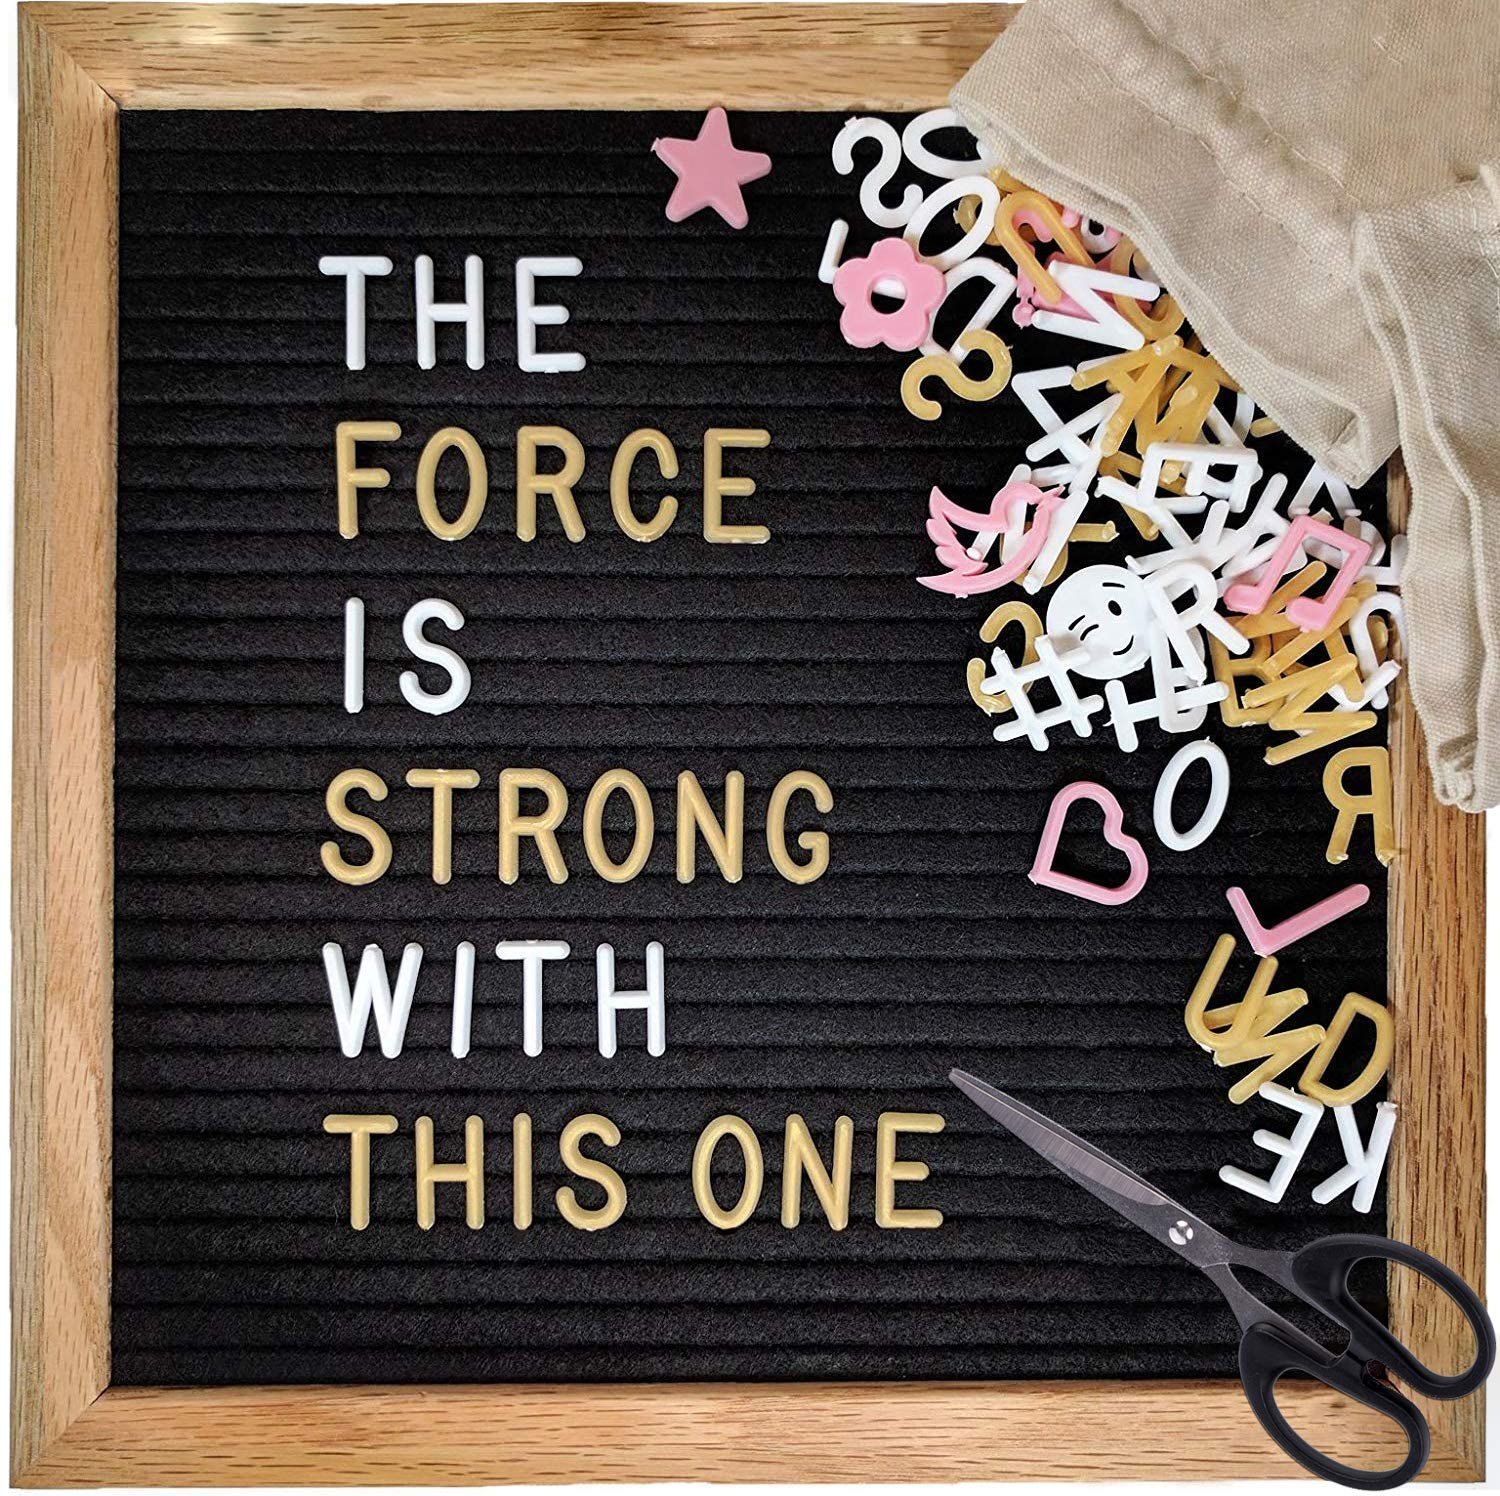 Changeable 10x10 Felt Letter Board Kit (Black, One-Sided) with 523 Characters (White, Pink & Gold) and Stand by Brite Crown